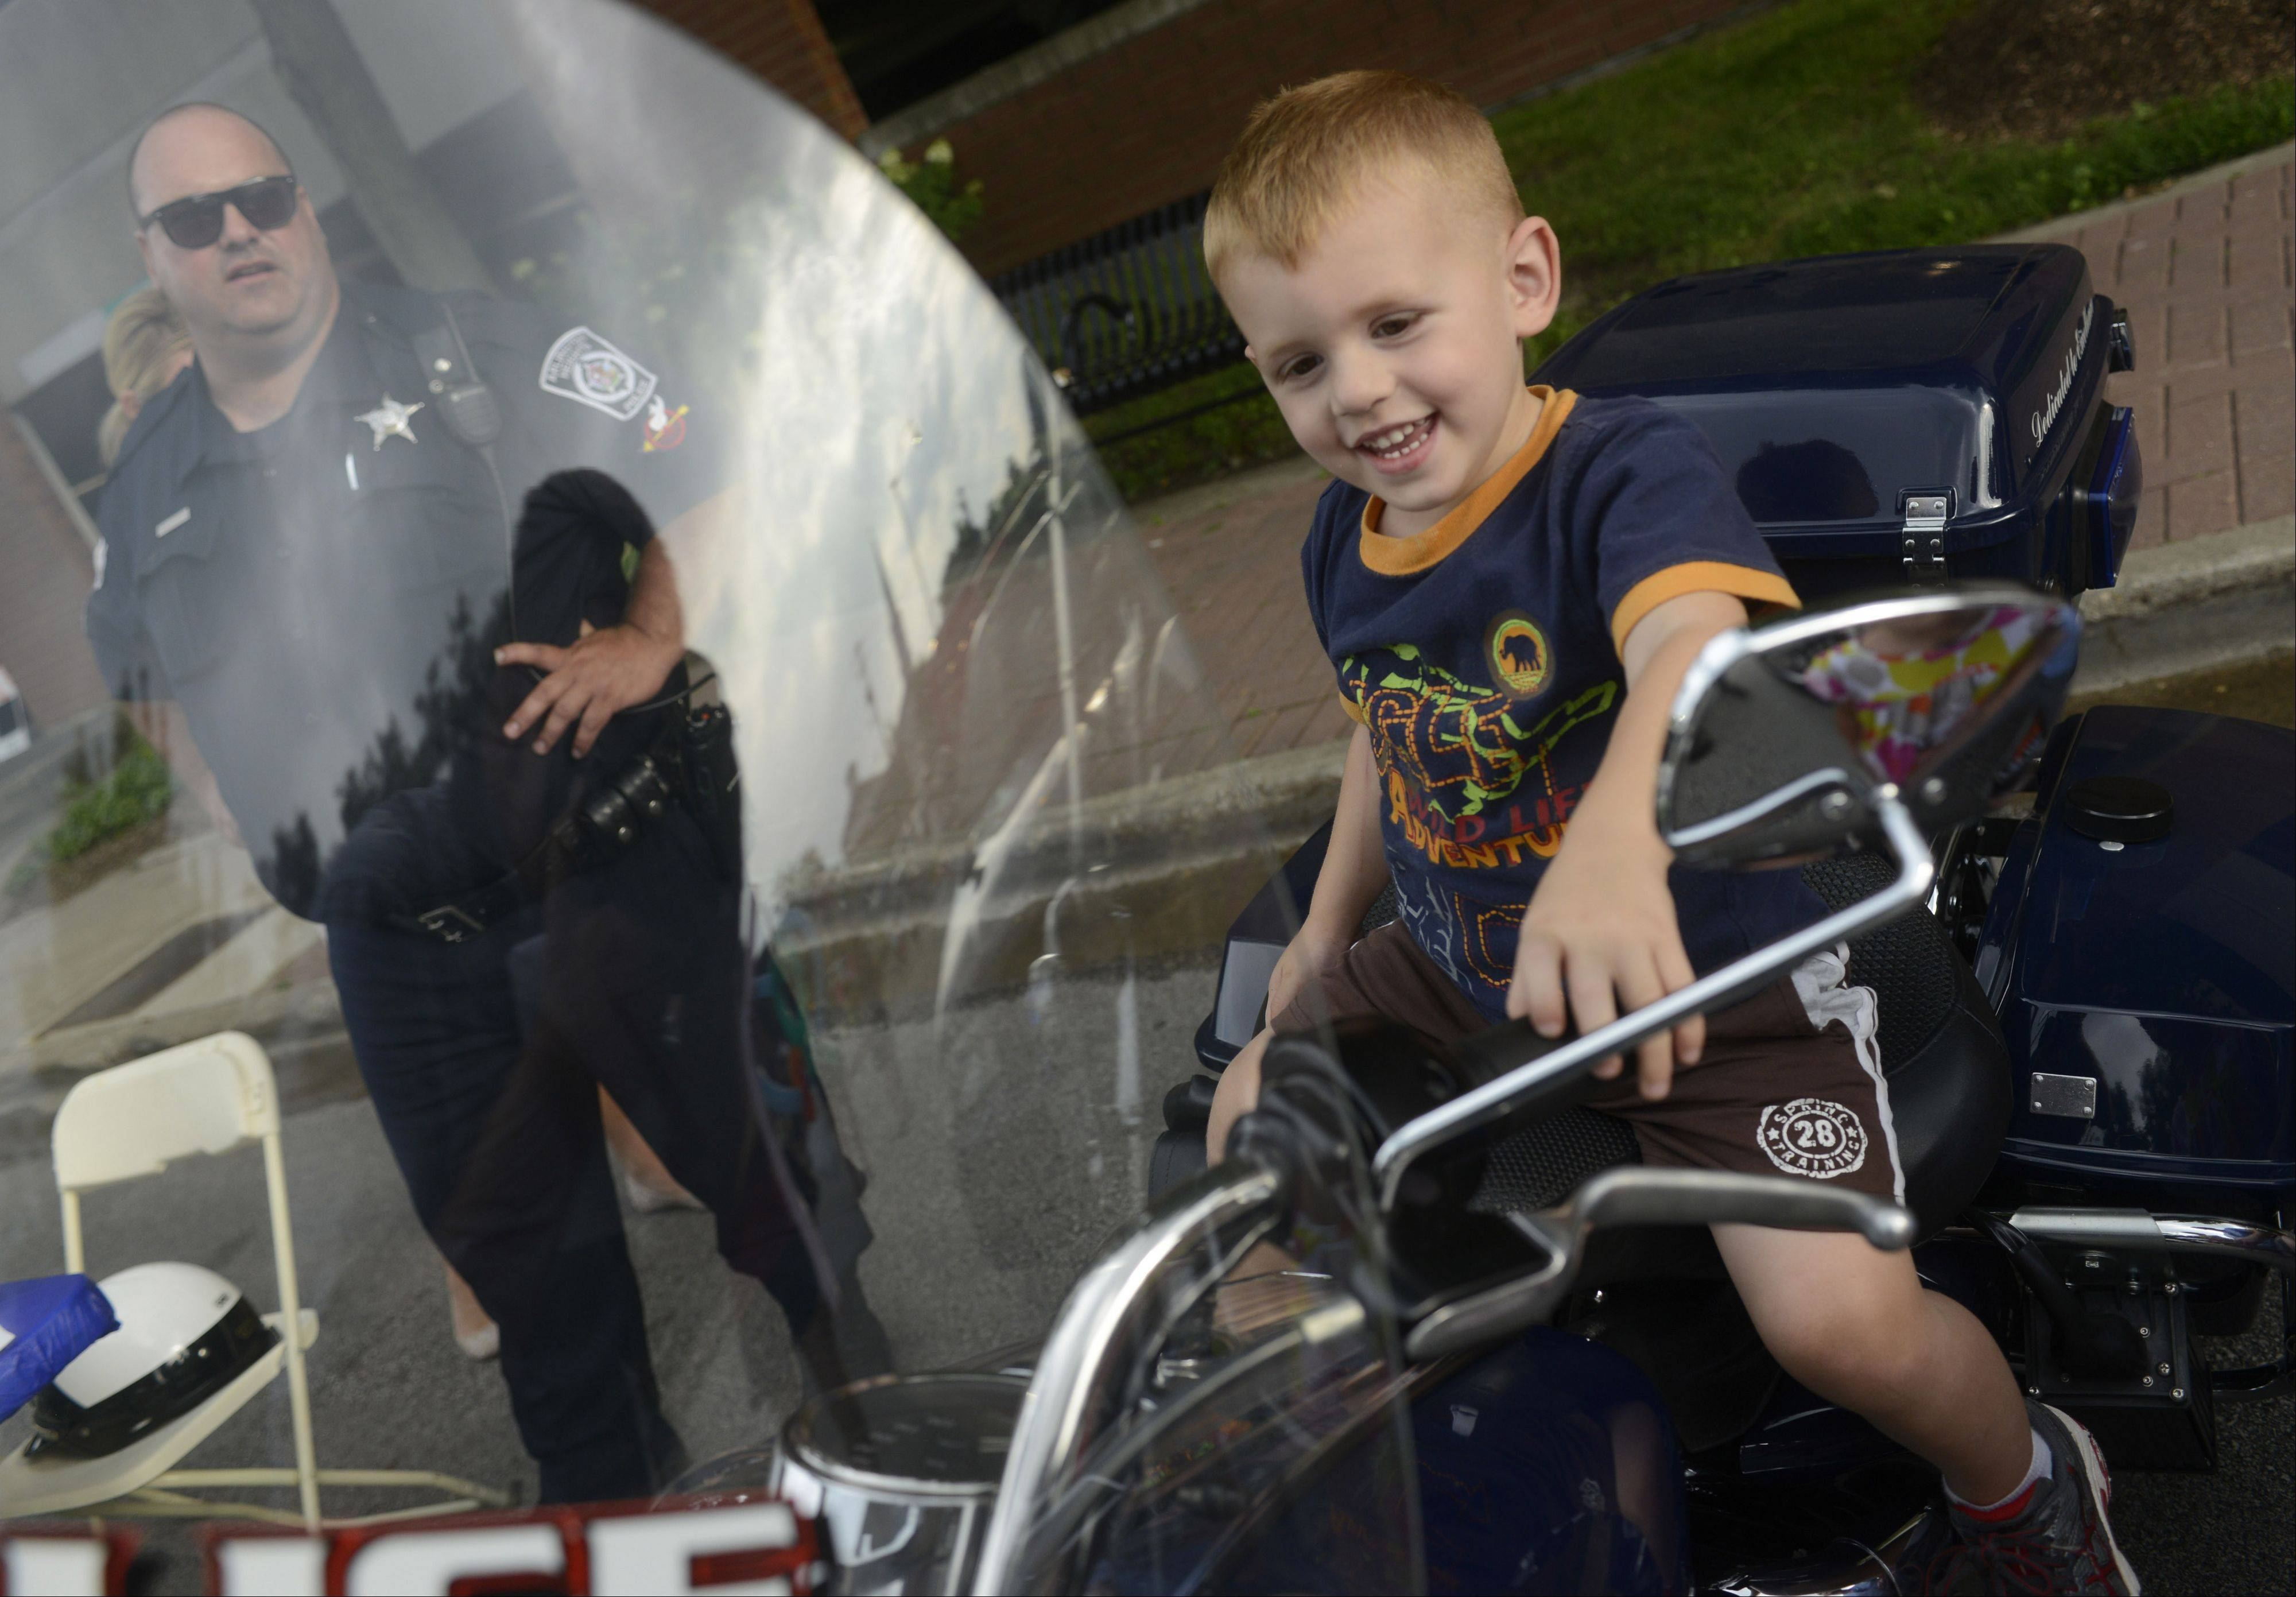 Pax Stukenberg, age 2, of Arlington Heights sits on Officer Tom Henderson's police motorcycle during the Arlington Heights National Night Out at North School Park Tuesday.